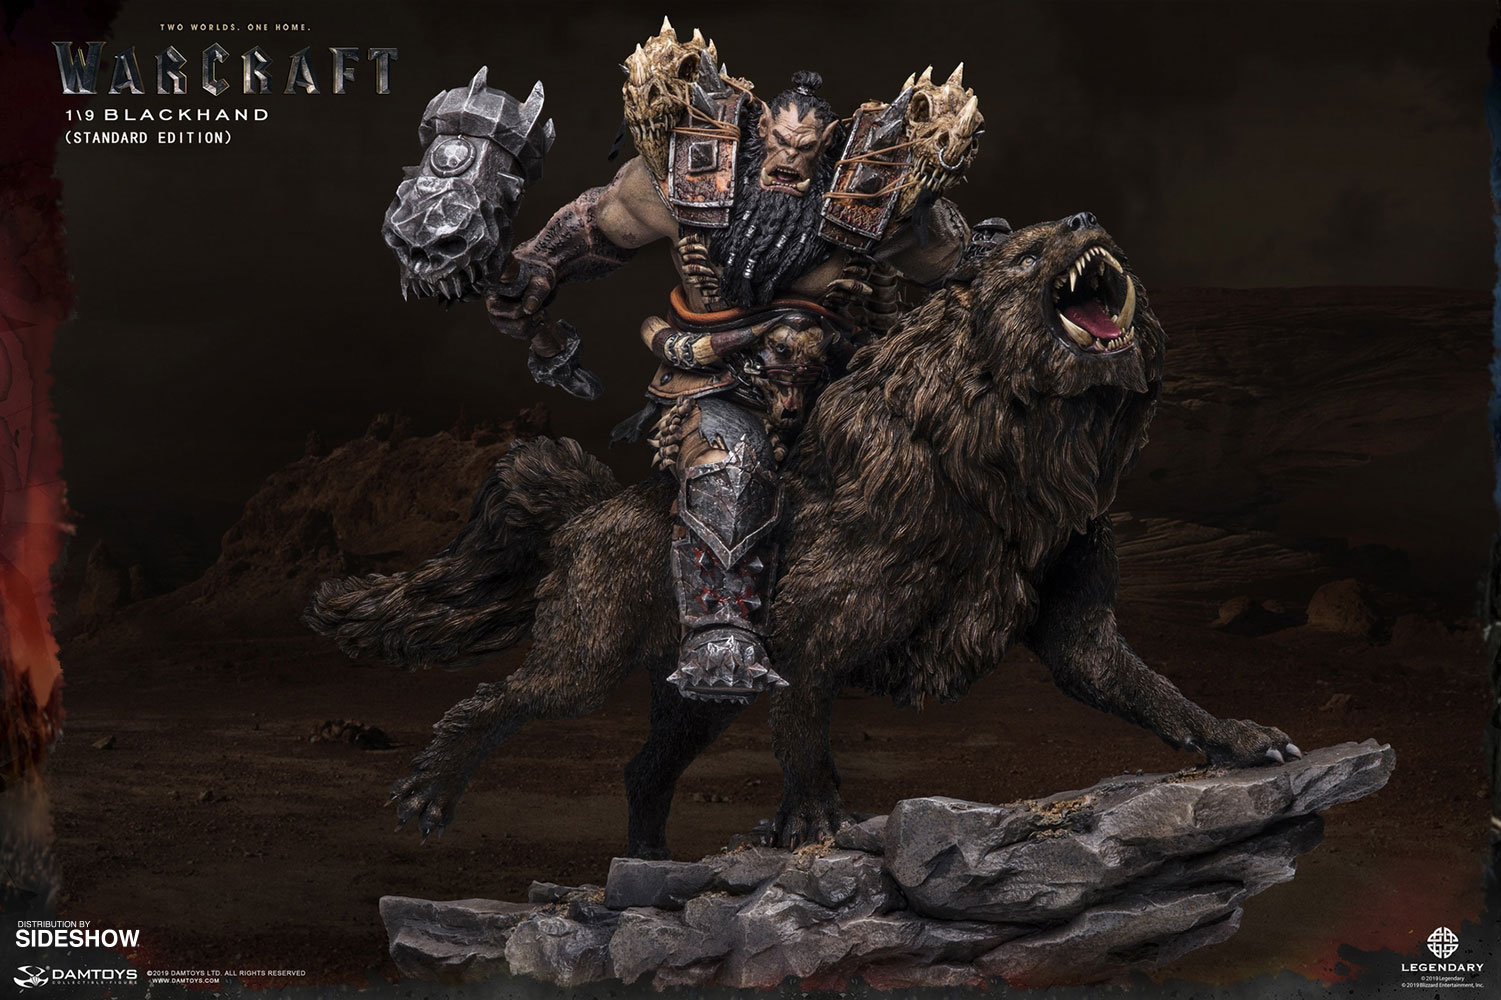 Blackhand Riding Wolf Statue By Damtoys Sideshow Collectibles